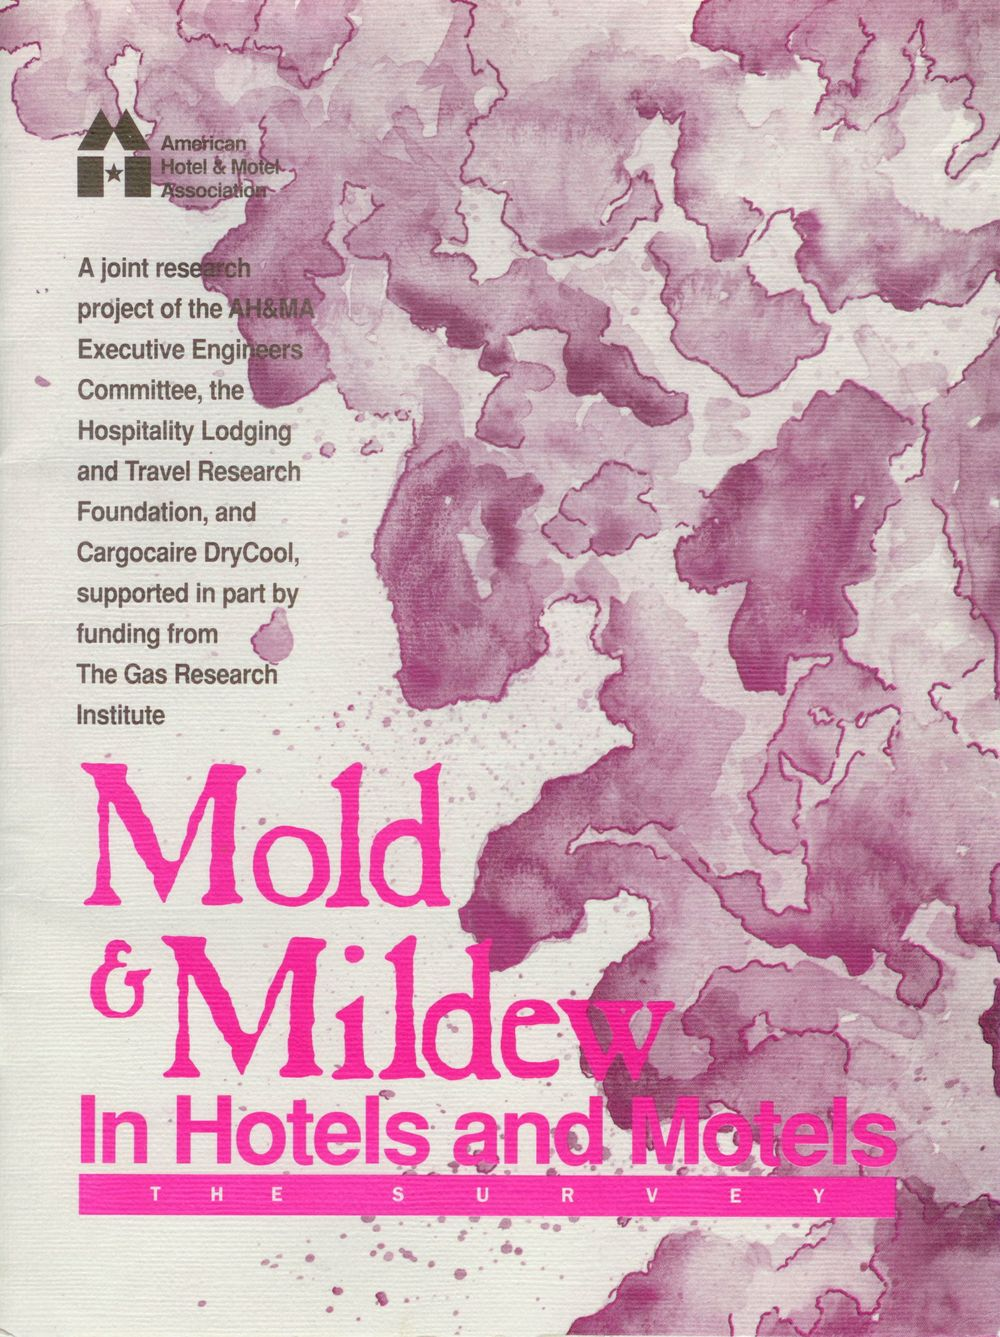 Mason-Grant was the lead research firm that generated this seminal report on mold in the hotel industry in 1992